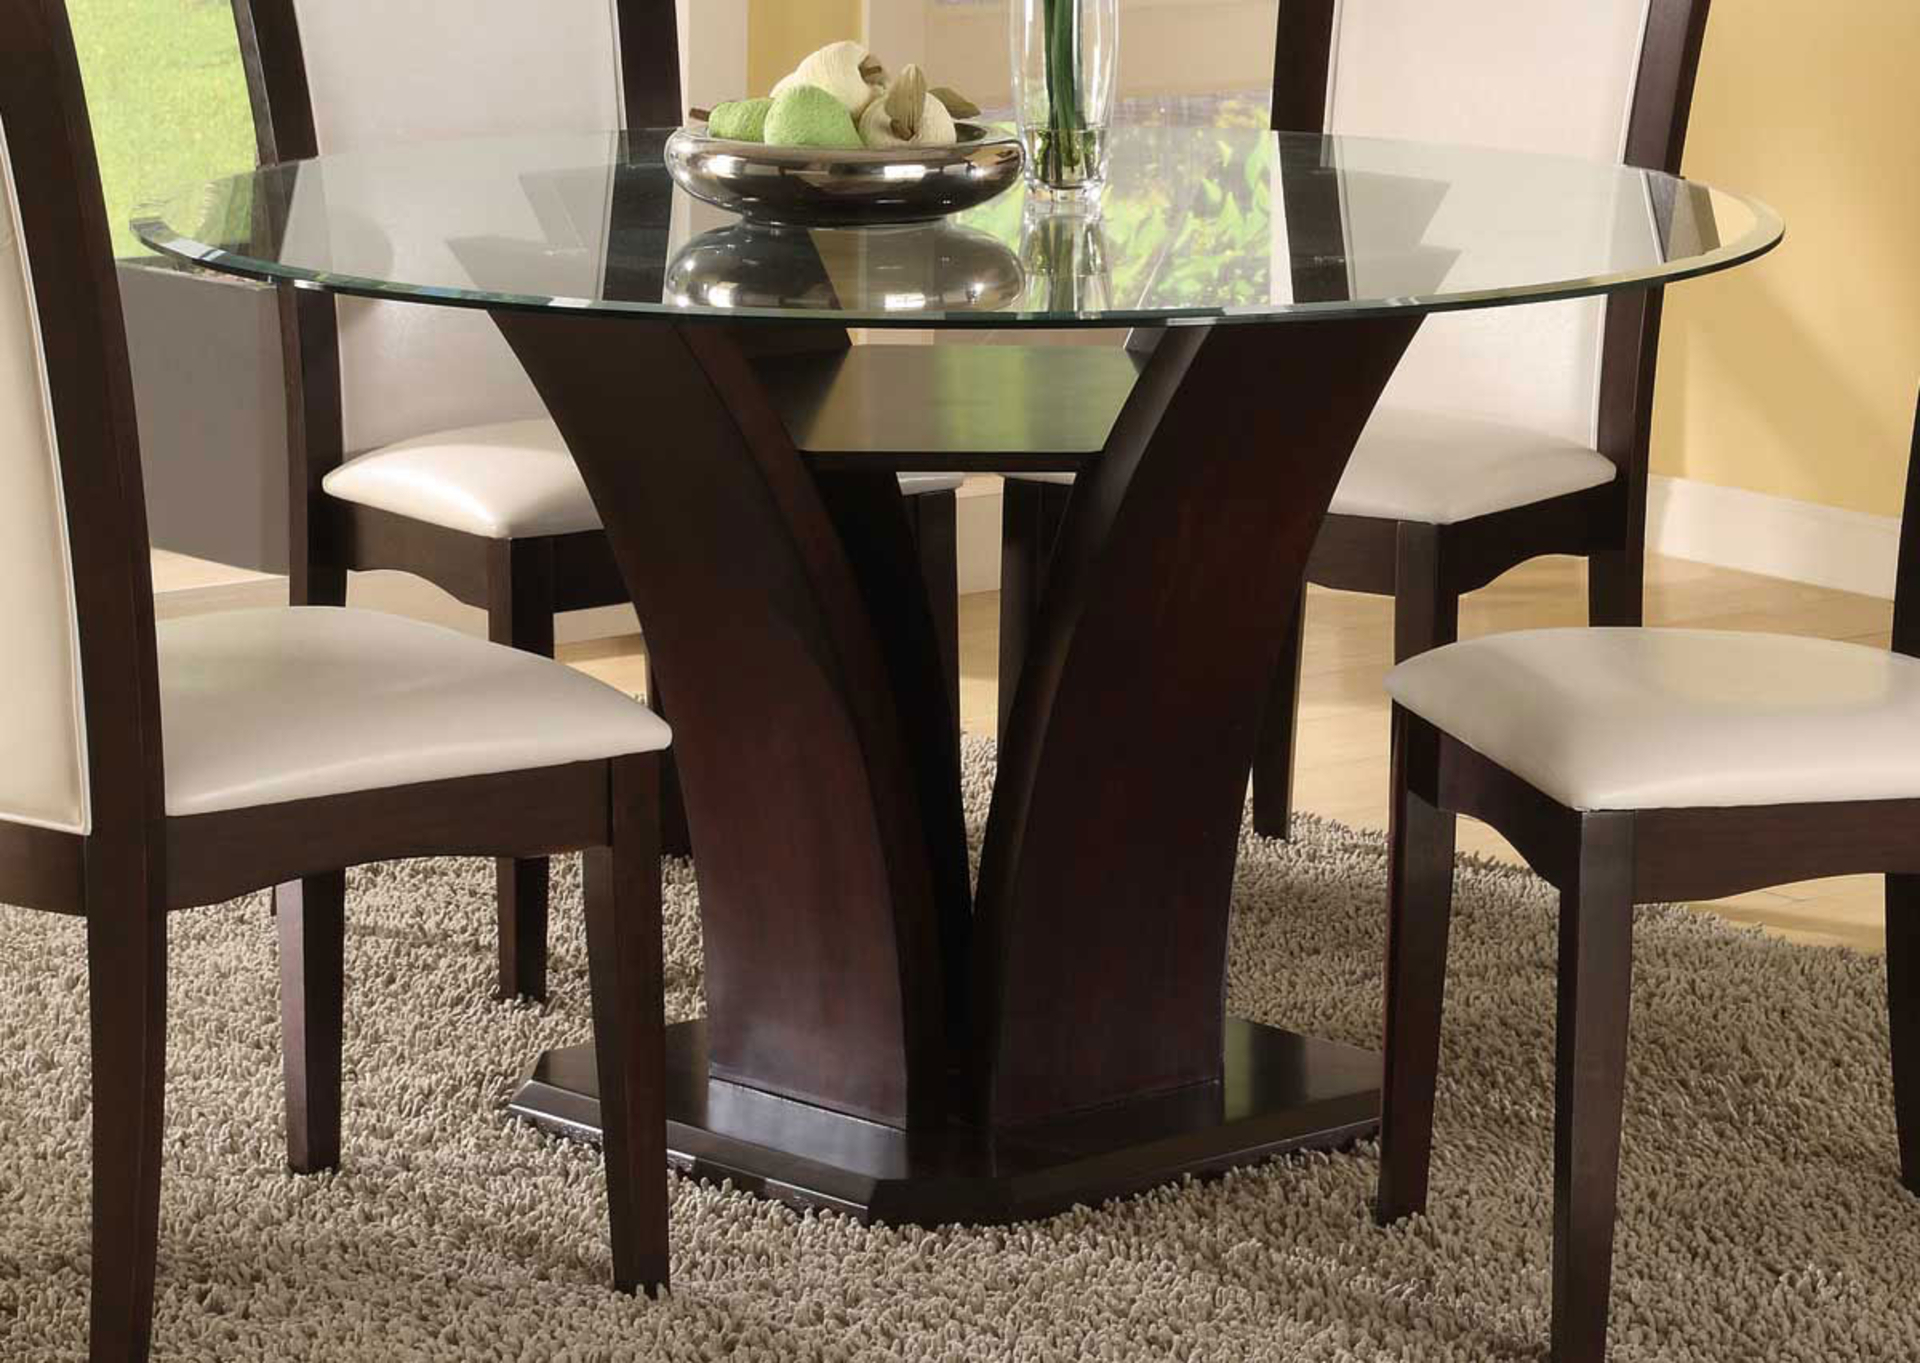 Fashionable Round Dining Tables With Glass Top Inside Inspiring Round Glass Dining Table For Cozy (View 10 of 25)